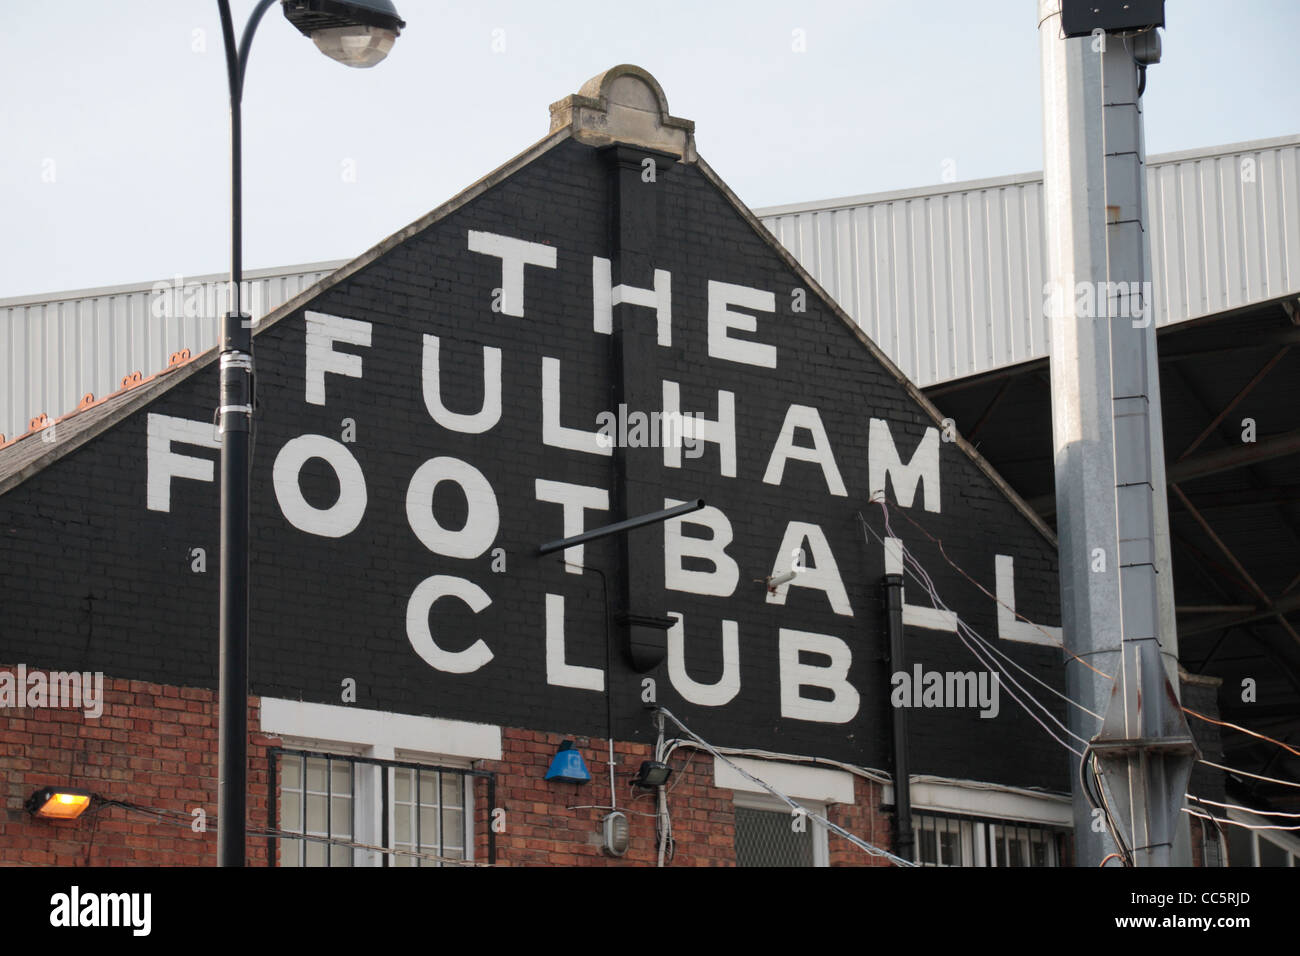 The name of Fulham Football Club on Craven Cottage, home of Fulham Football Club, West London, UK. - Stock Image